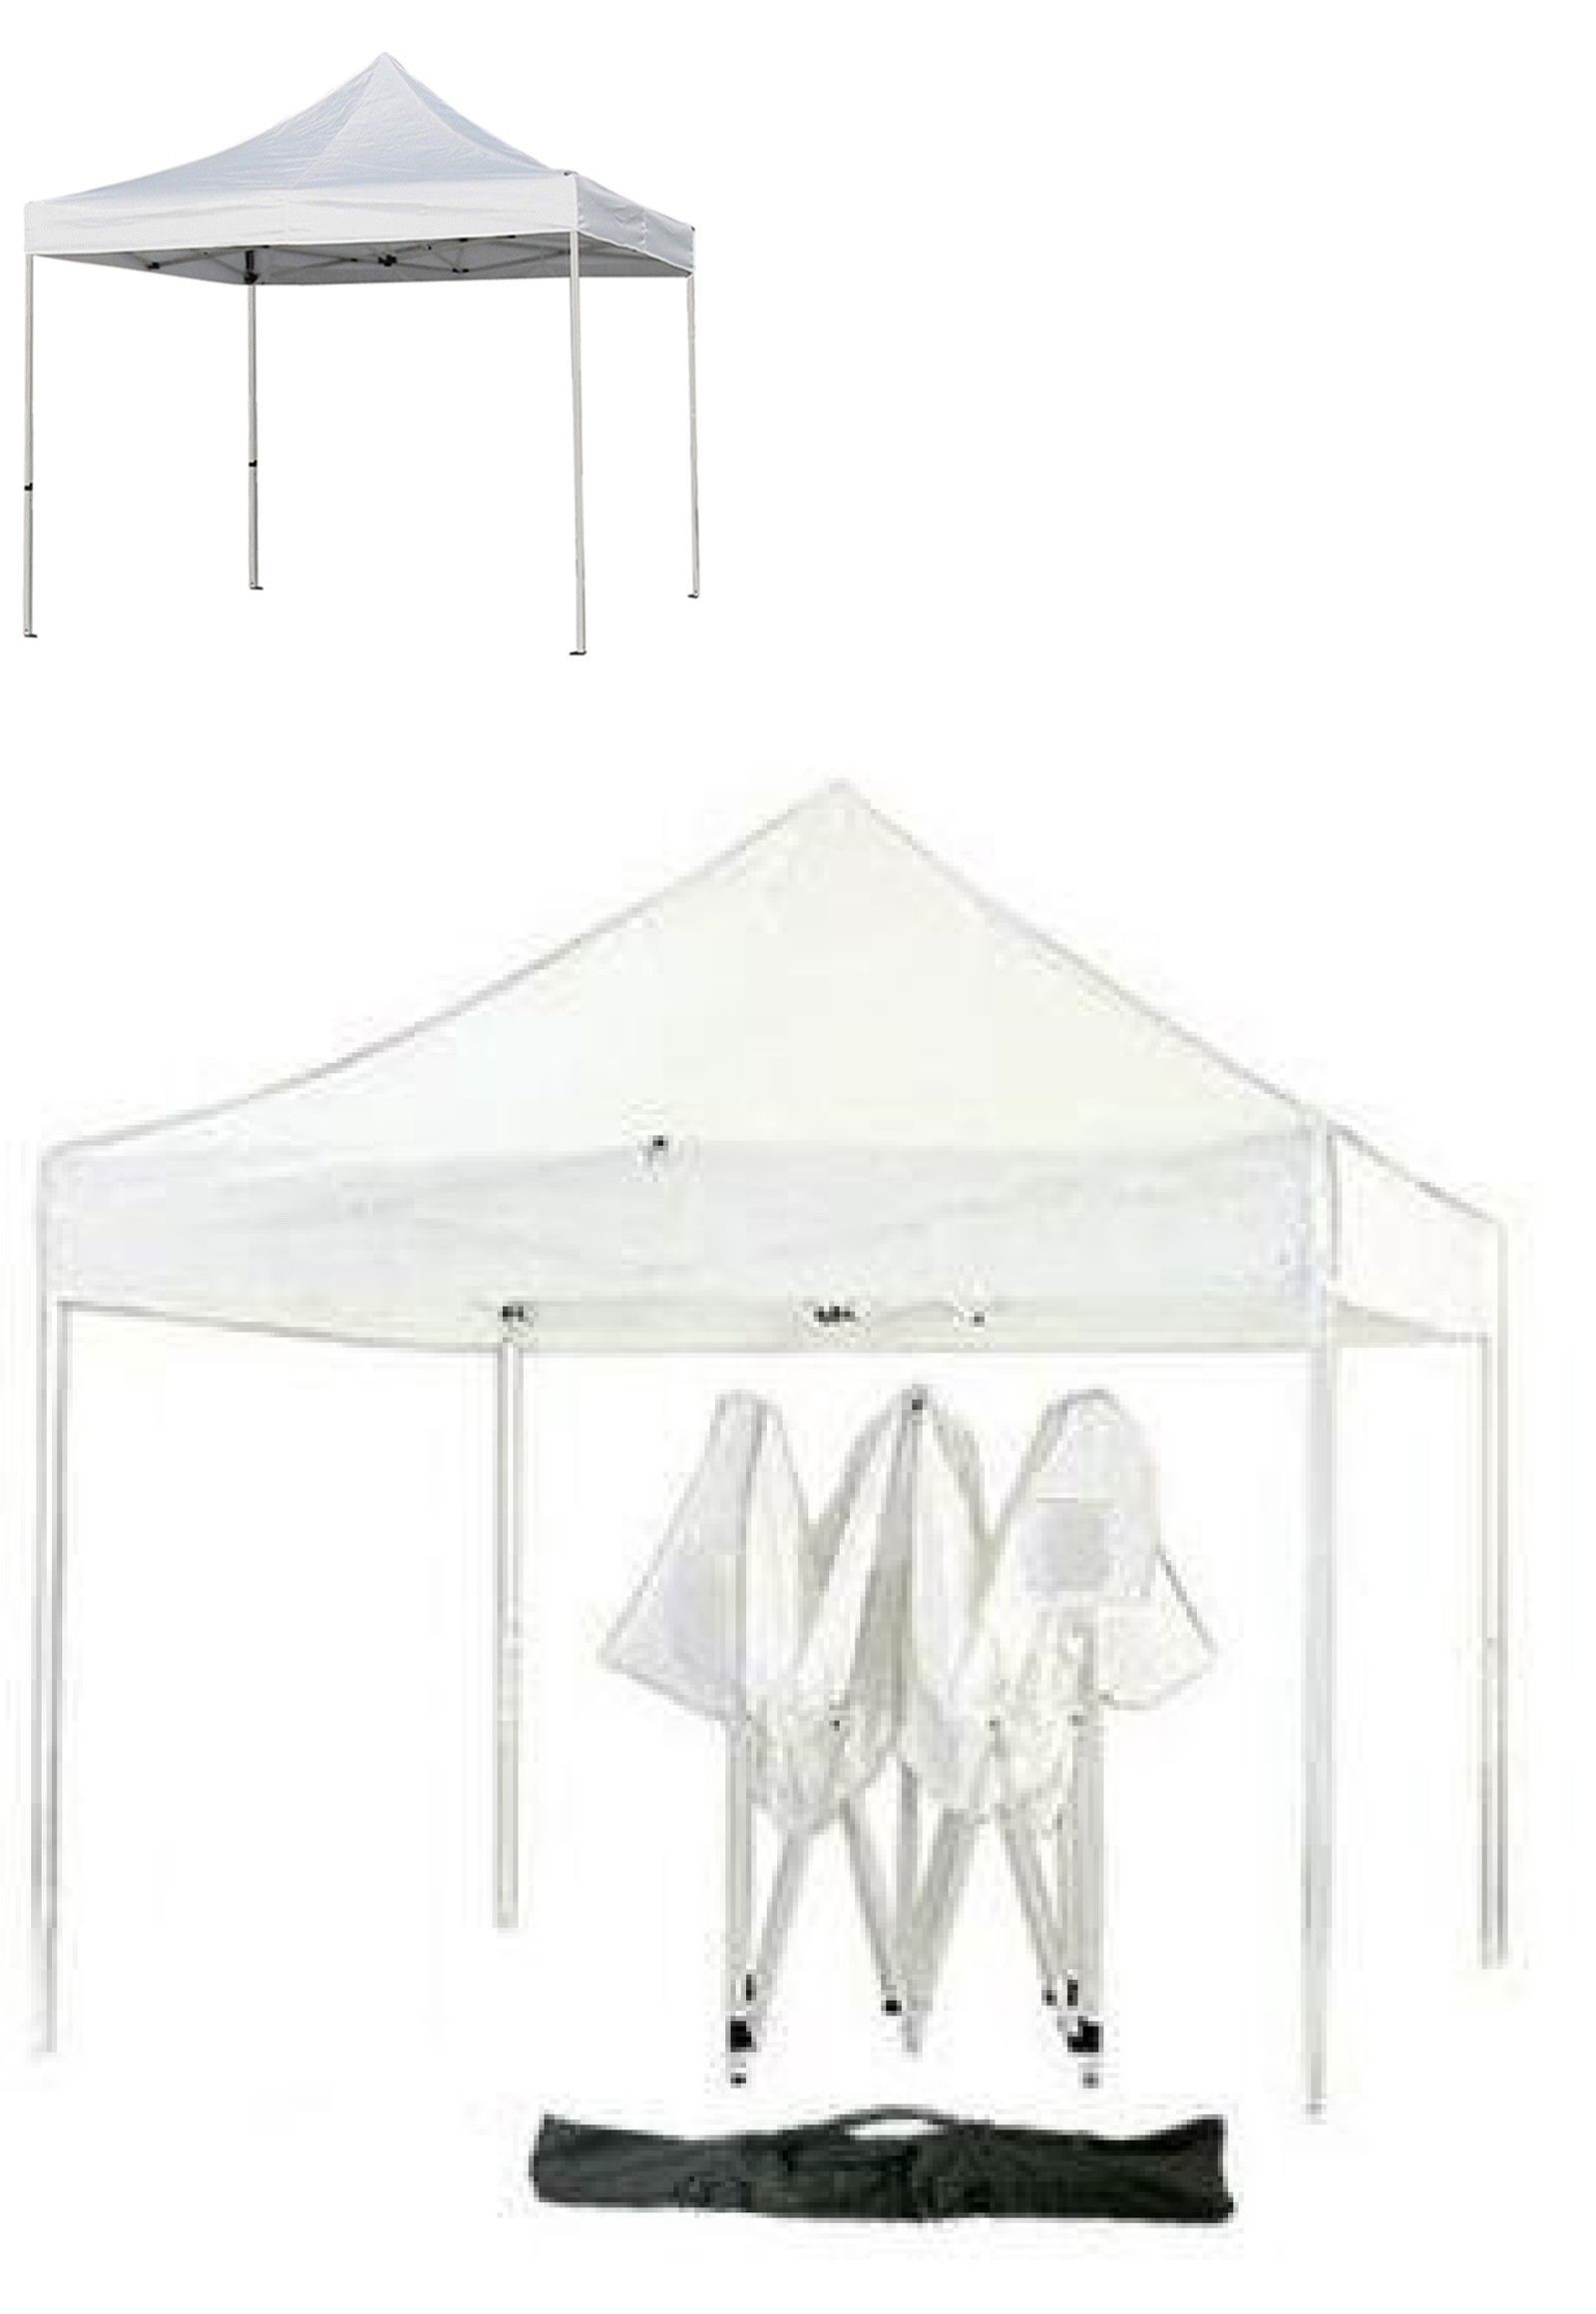 Awnings And Canopies 180992 Ez Pop Up Canopy Tent 10x10 Expandable Event Party Shade White 126 Buy It Now On Pop Up Canopy Tent Instant Canopy Canopy Tent